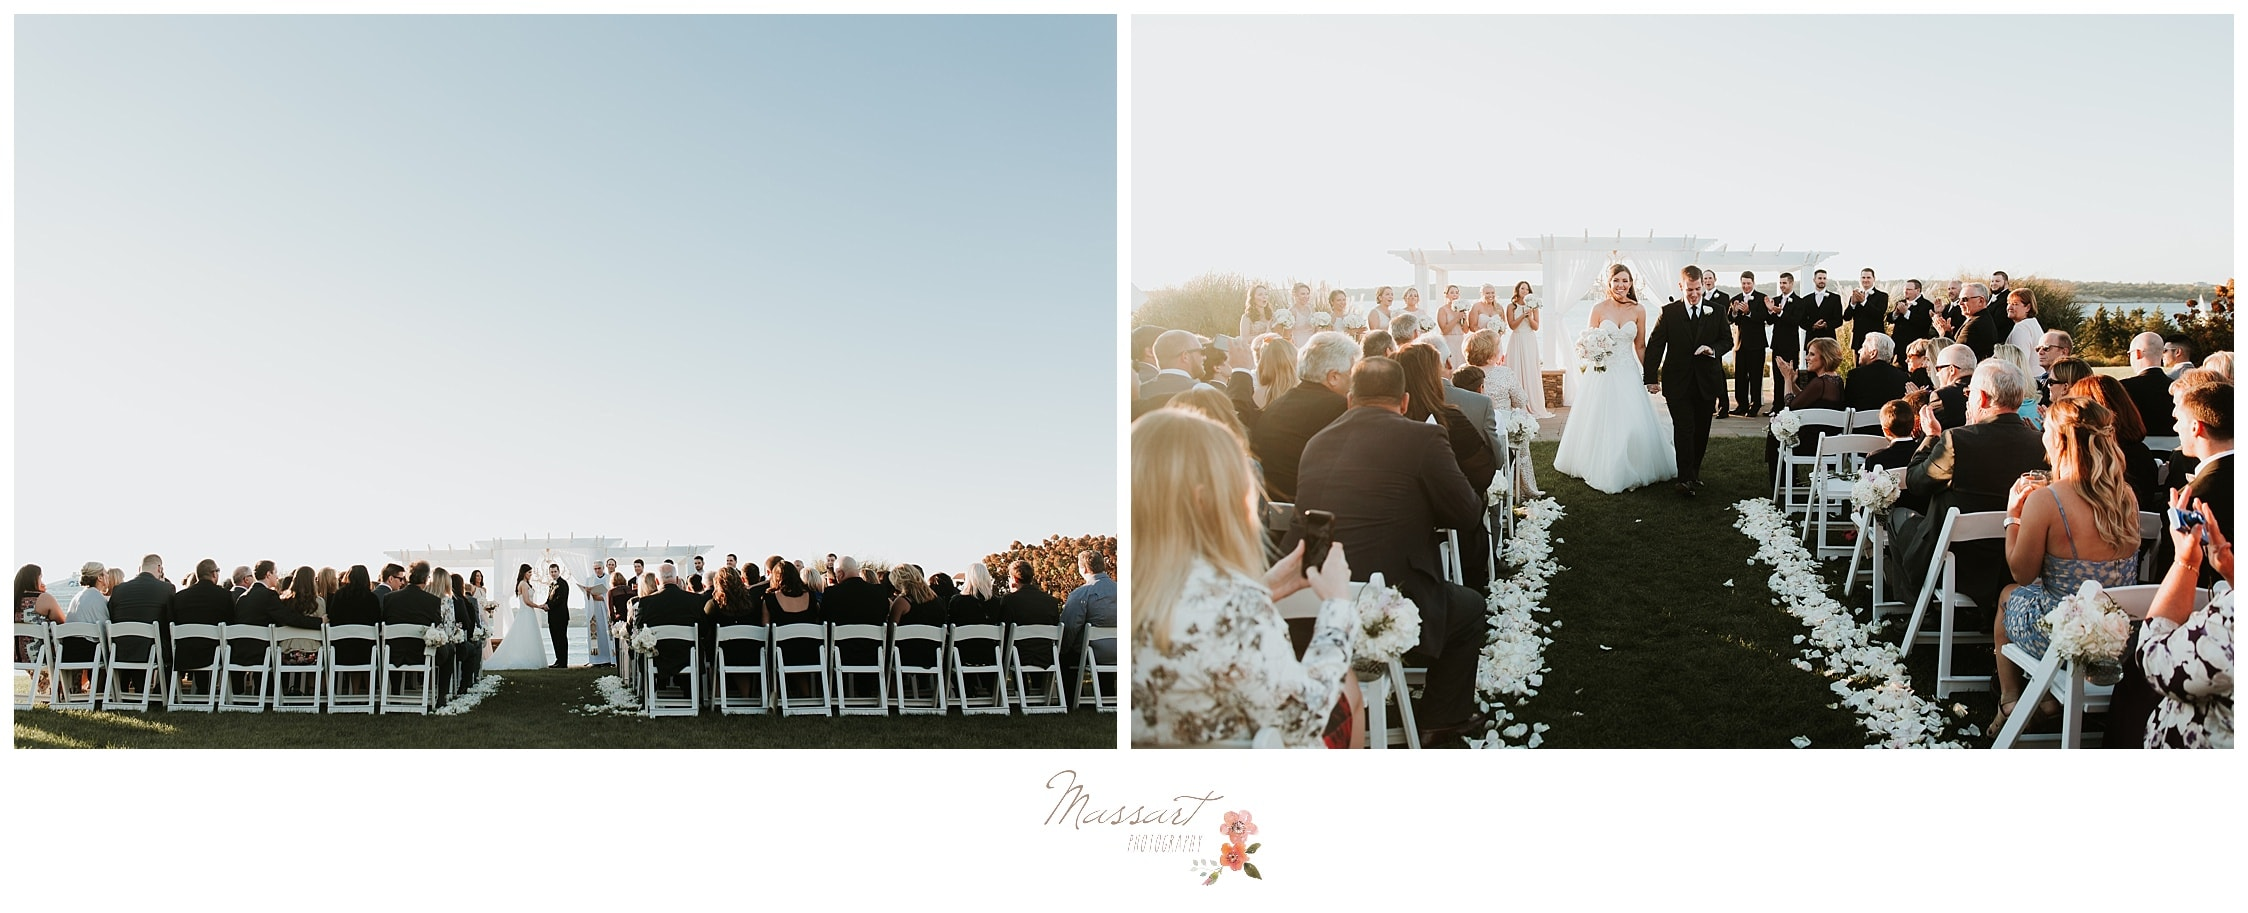 Wedding guests watch the wedding ceremony photographed by Massart Photography Rhode Island